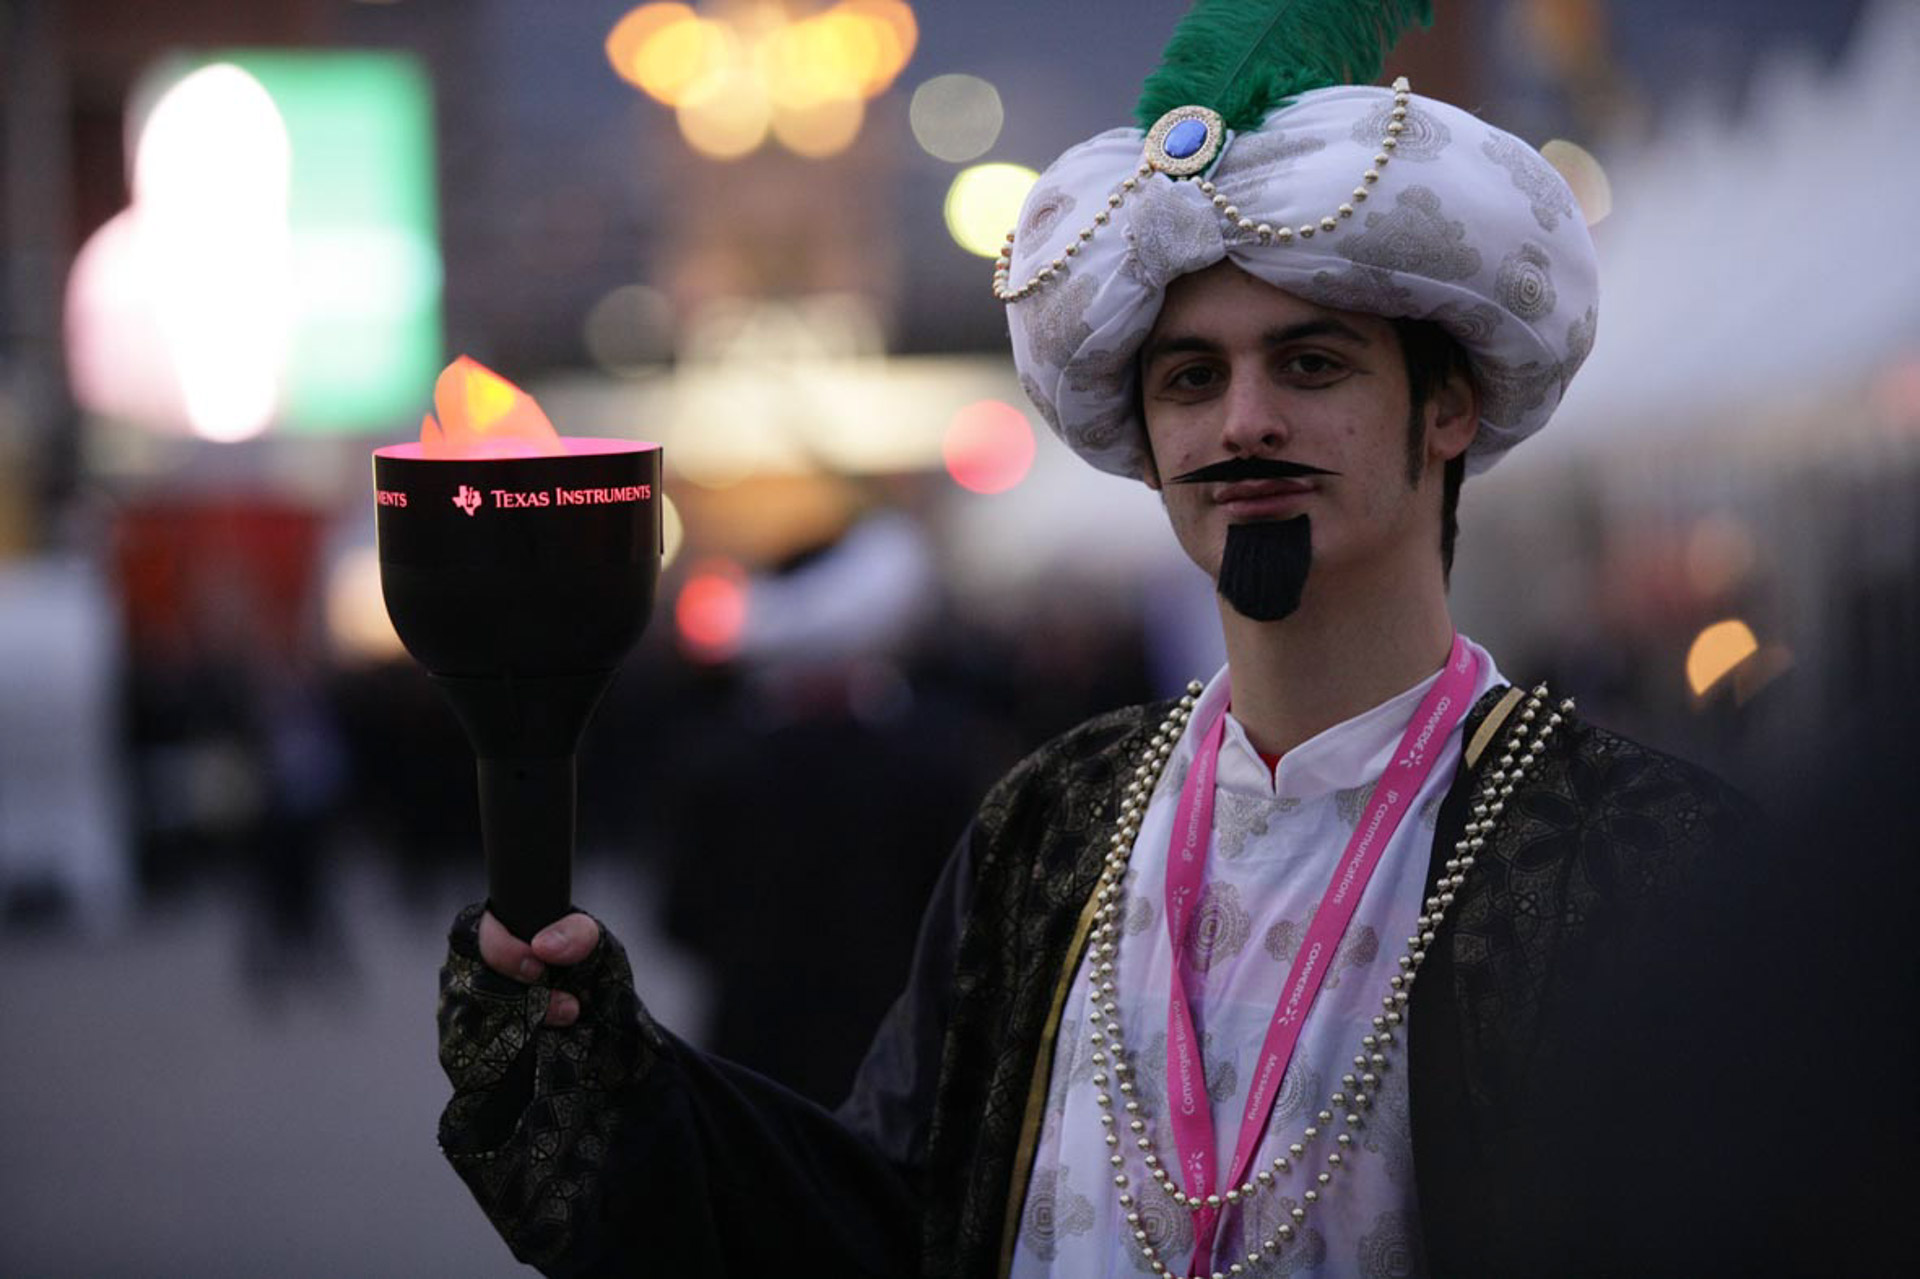 maharaja dressed up actor with branded torch to lead the way towards the venue at the exit of MWC congress in Barcelona